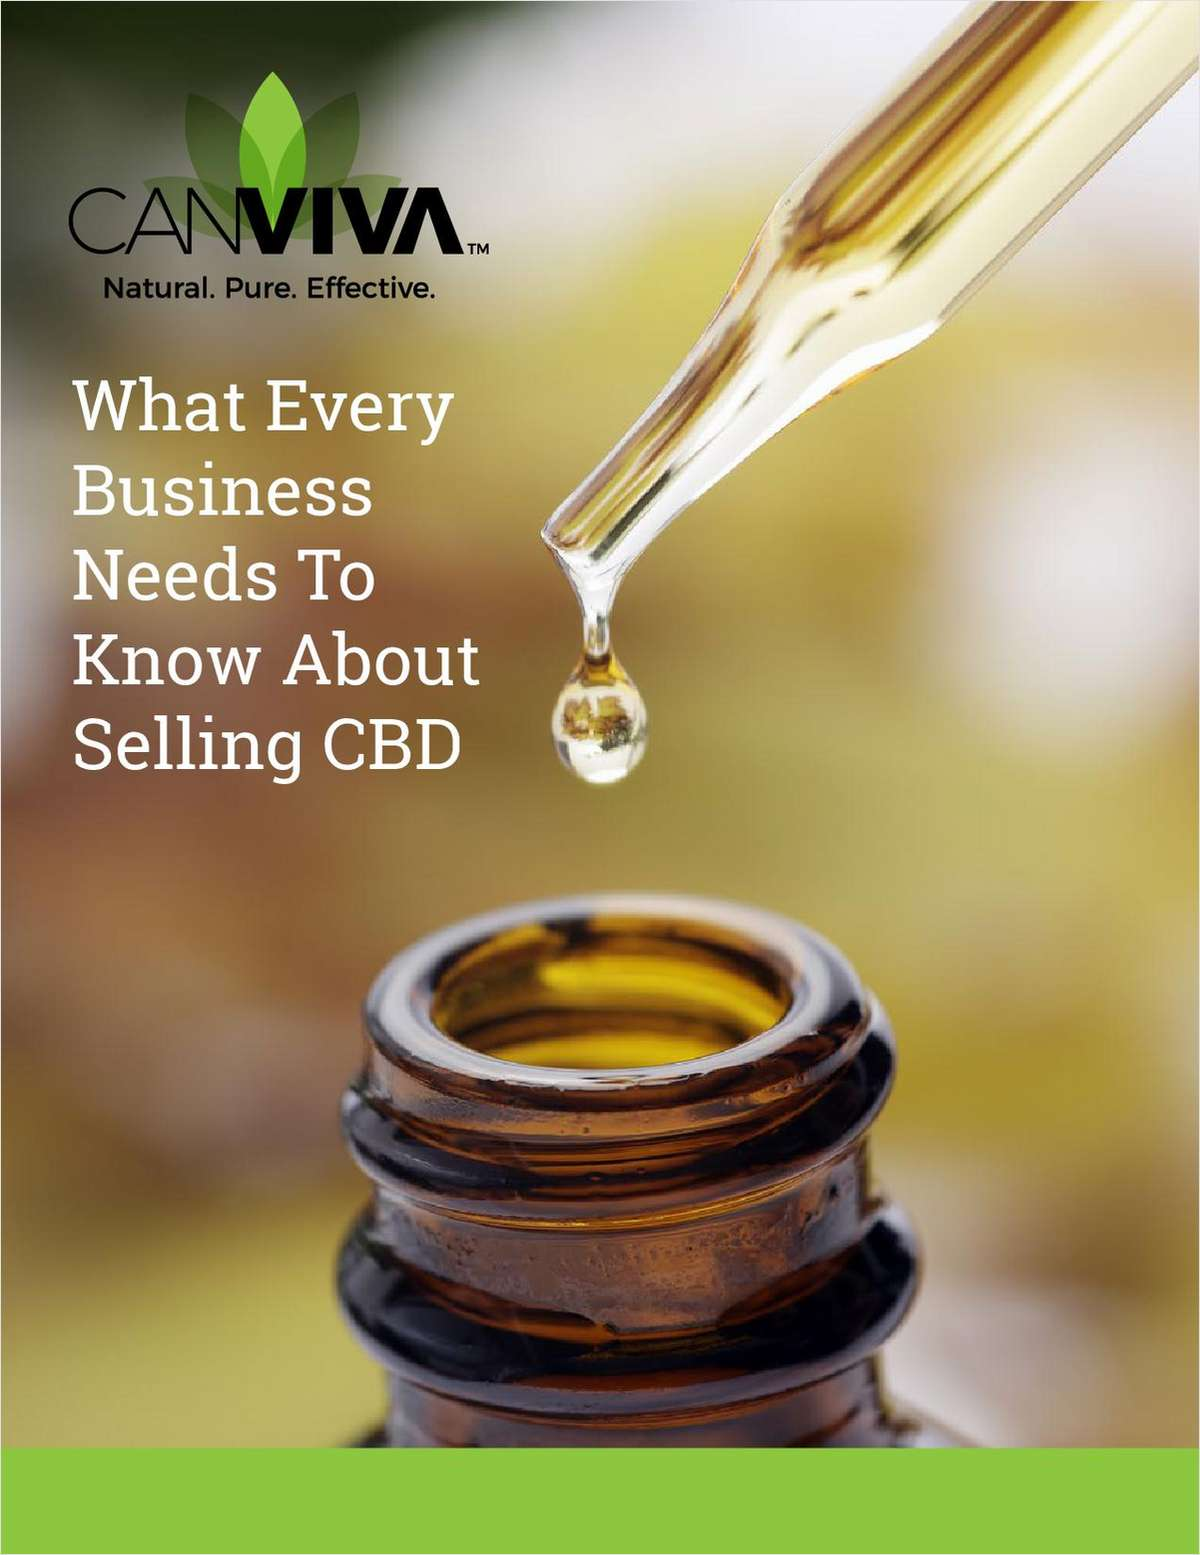 Big Relief, Big Profits: Why Your Business Should Sell CBD Products